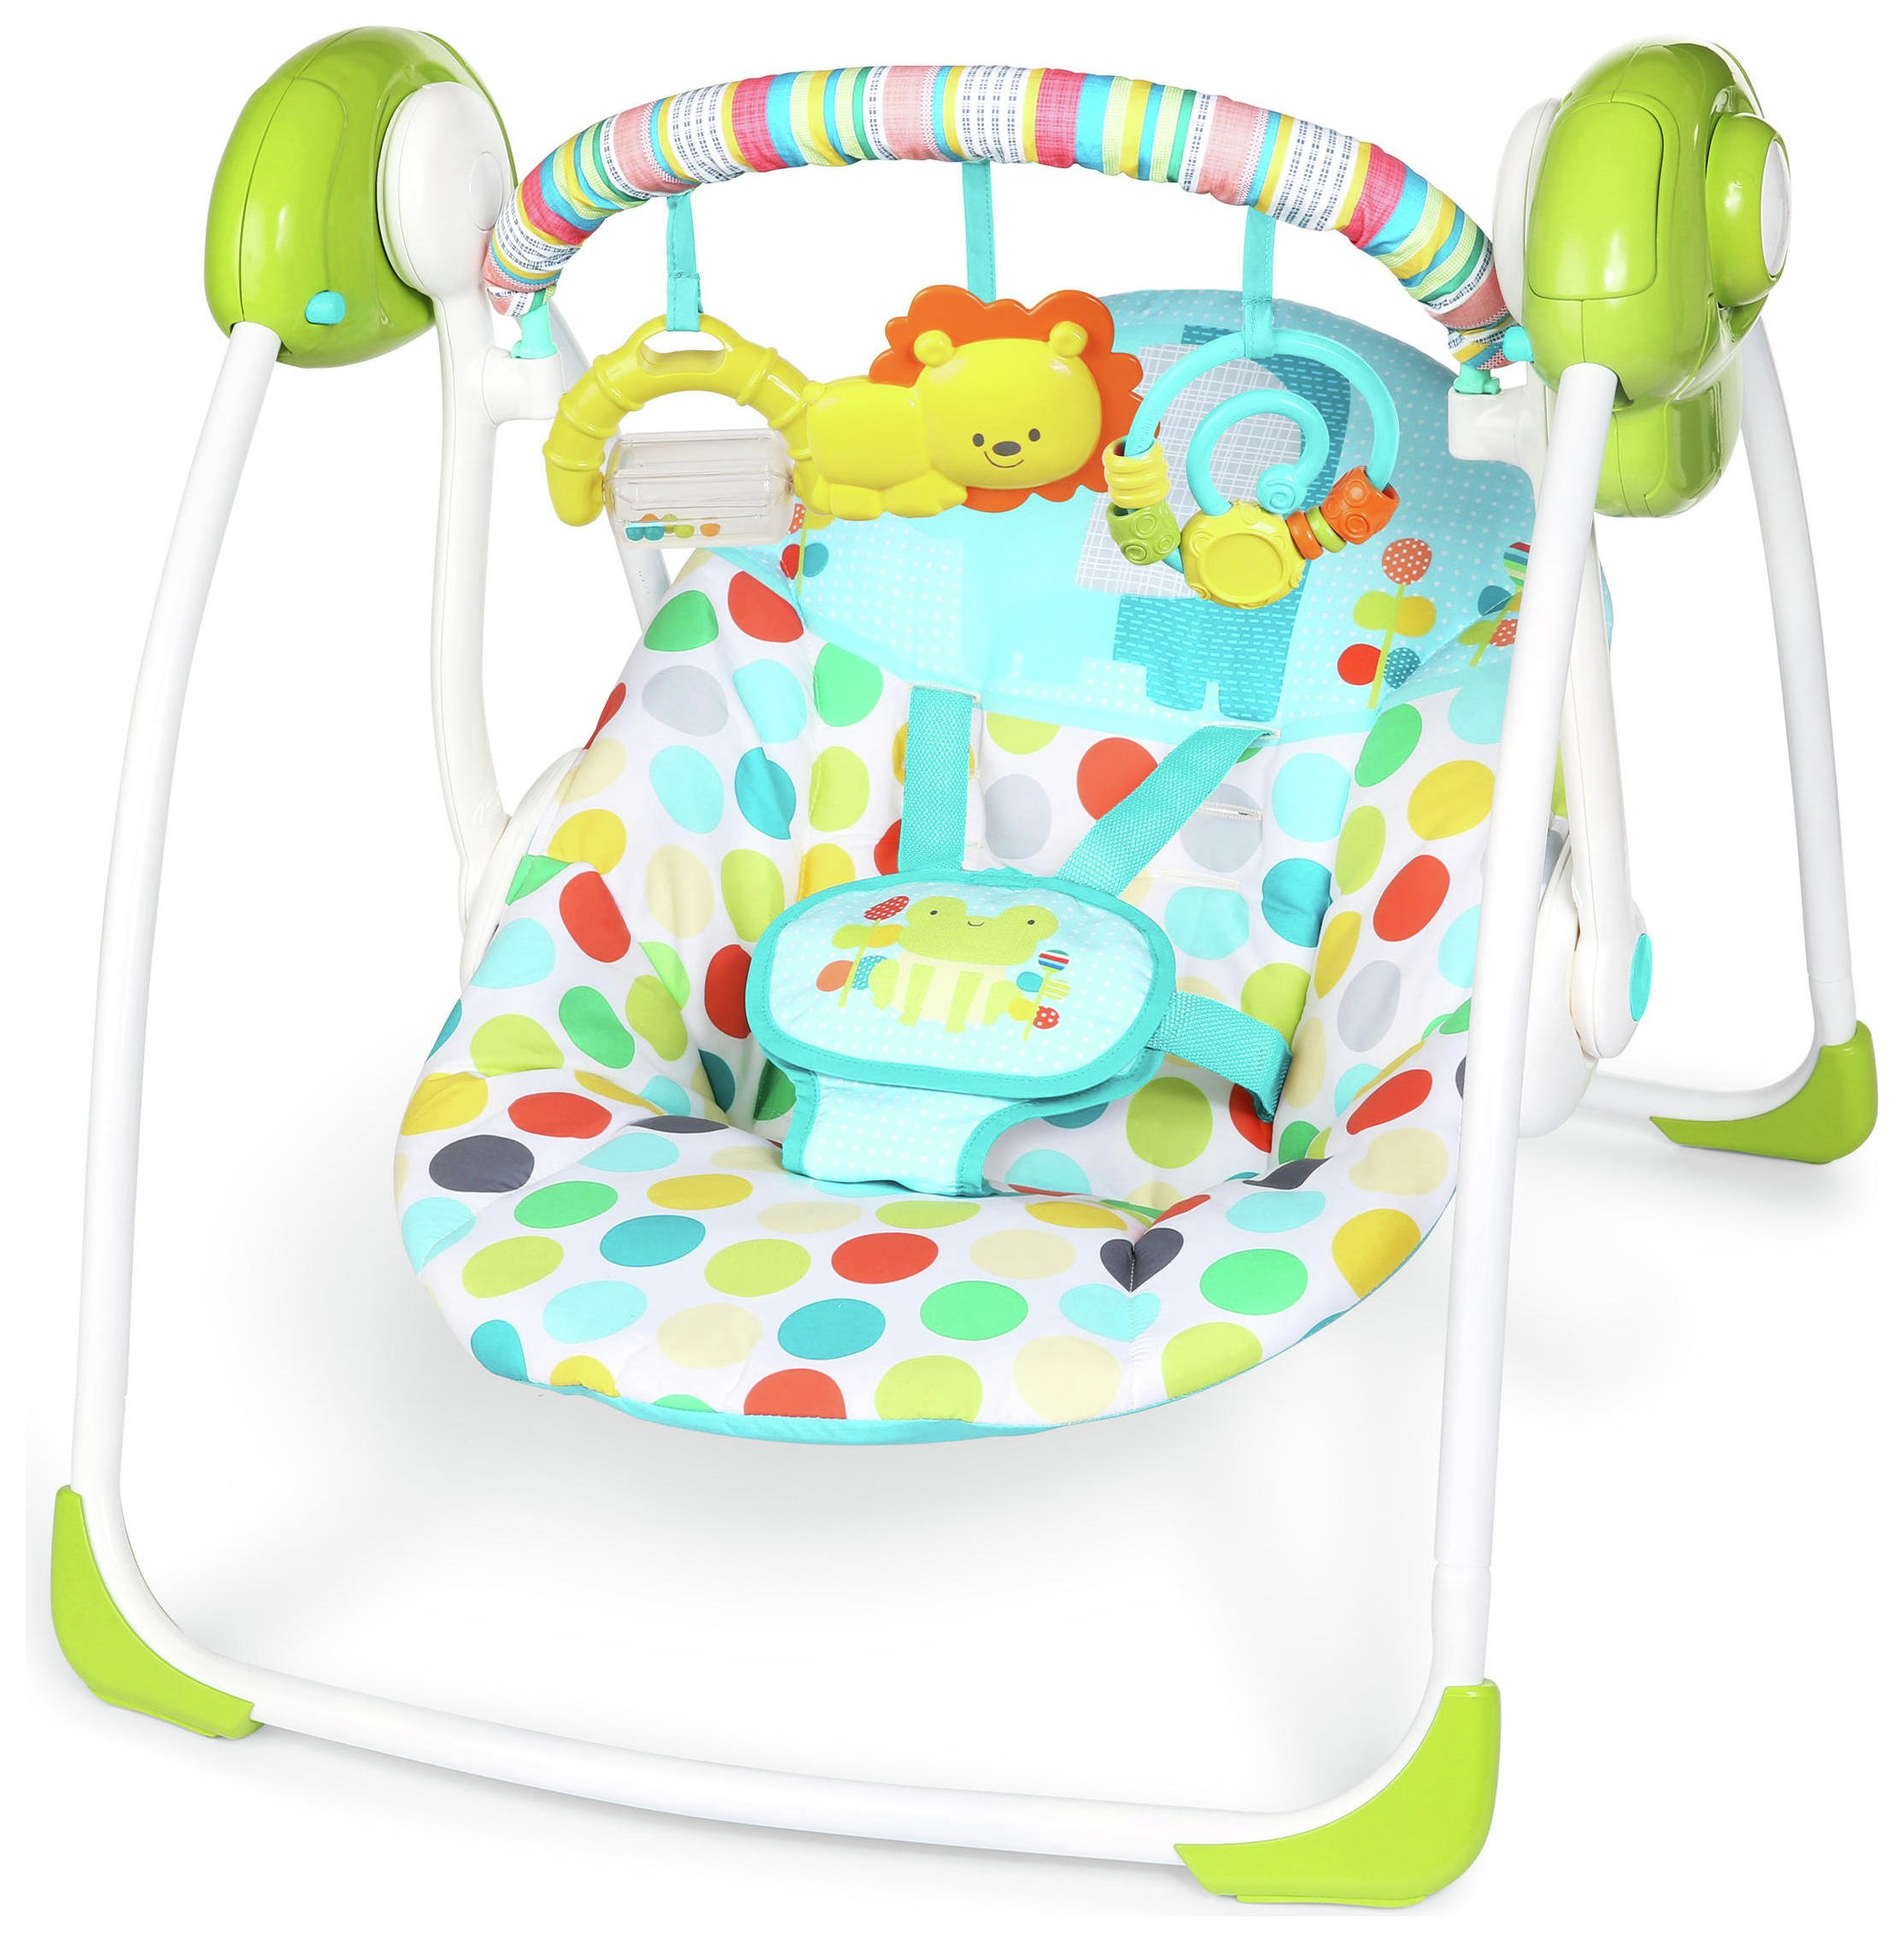 Image of Chad Valley - Circus Friends Portable Swing